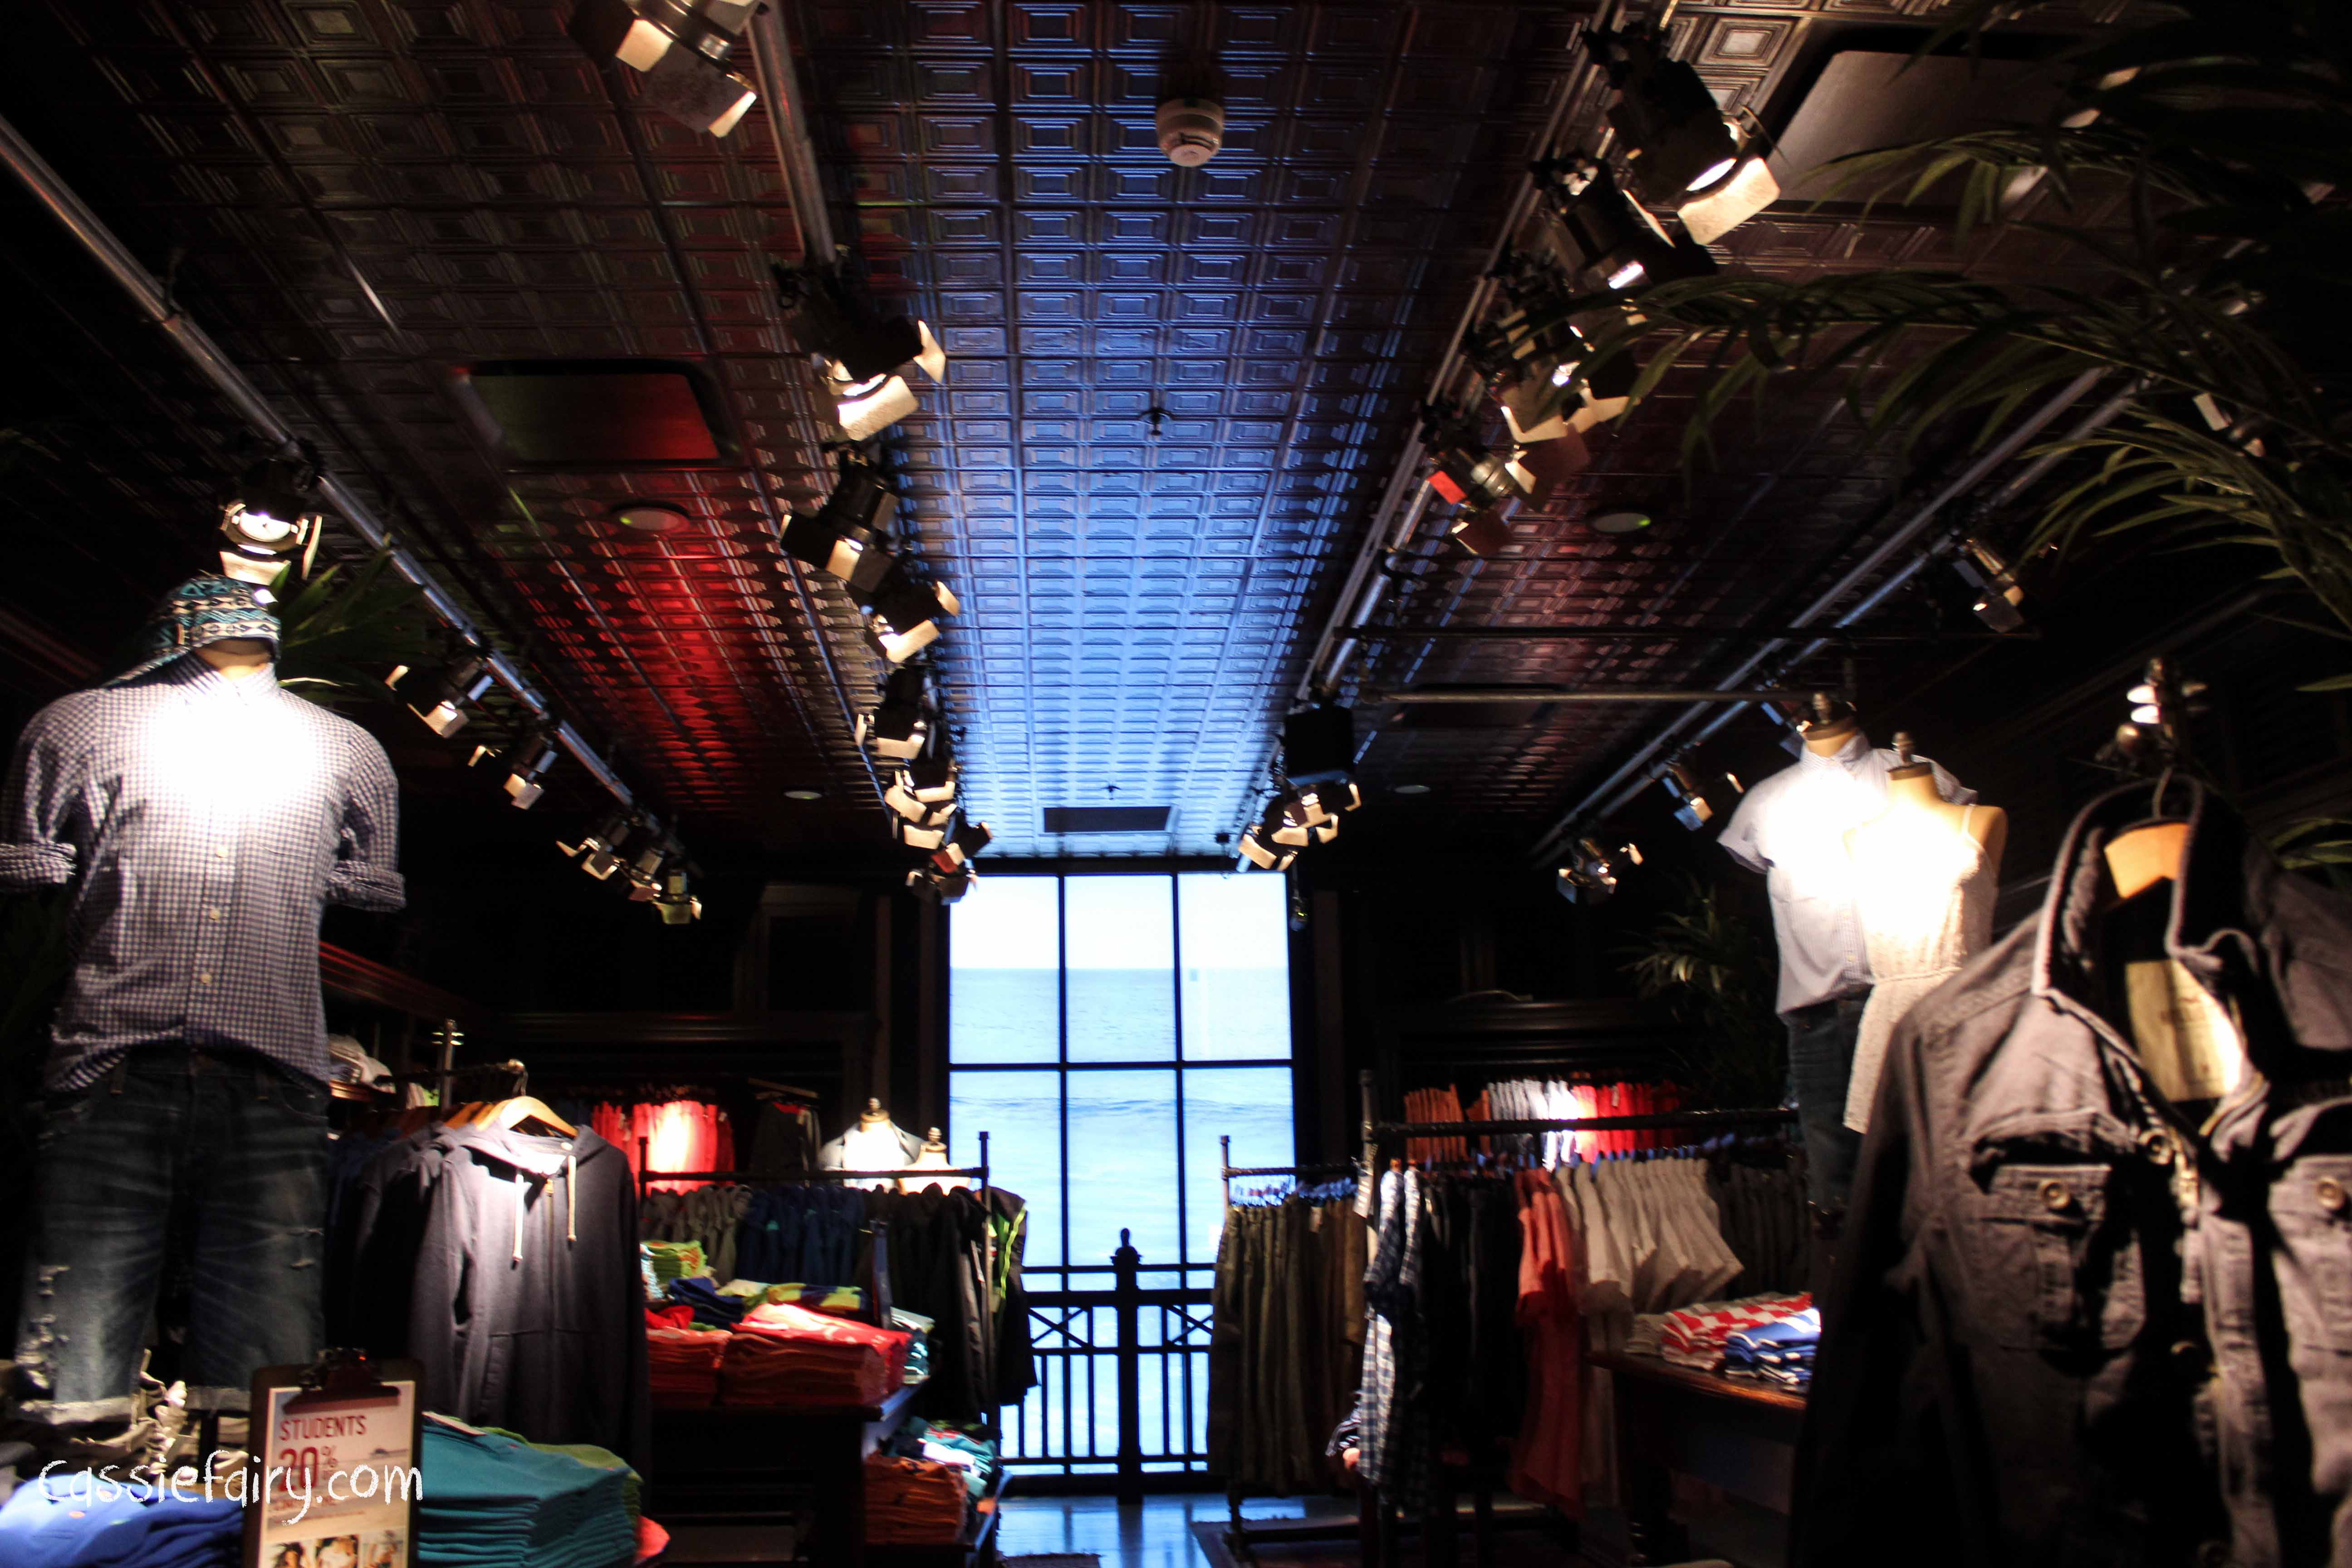 Getting interior design inspiration from hollister store Hollister design